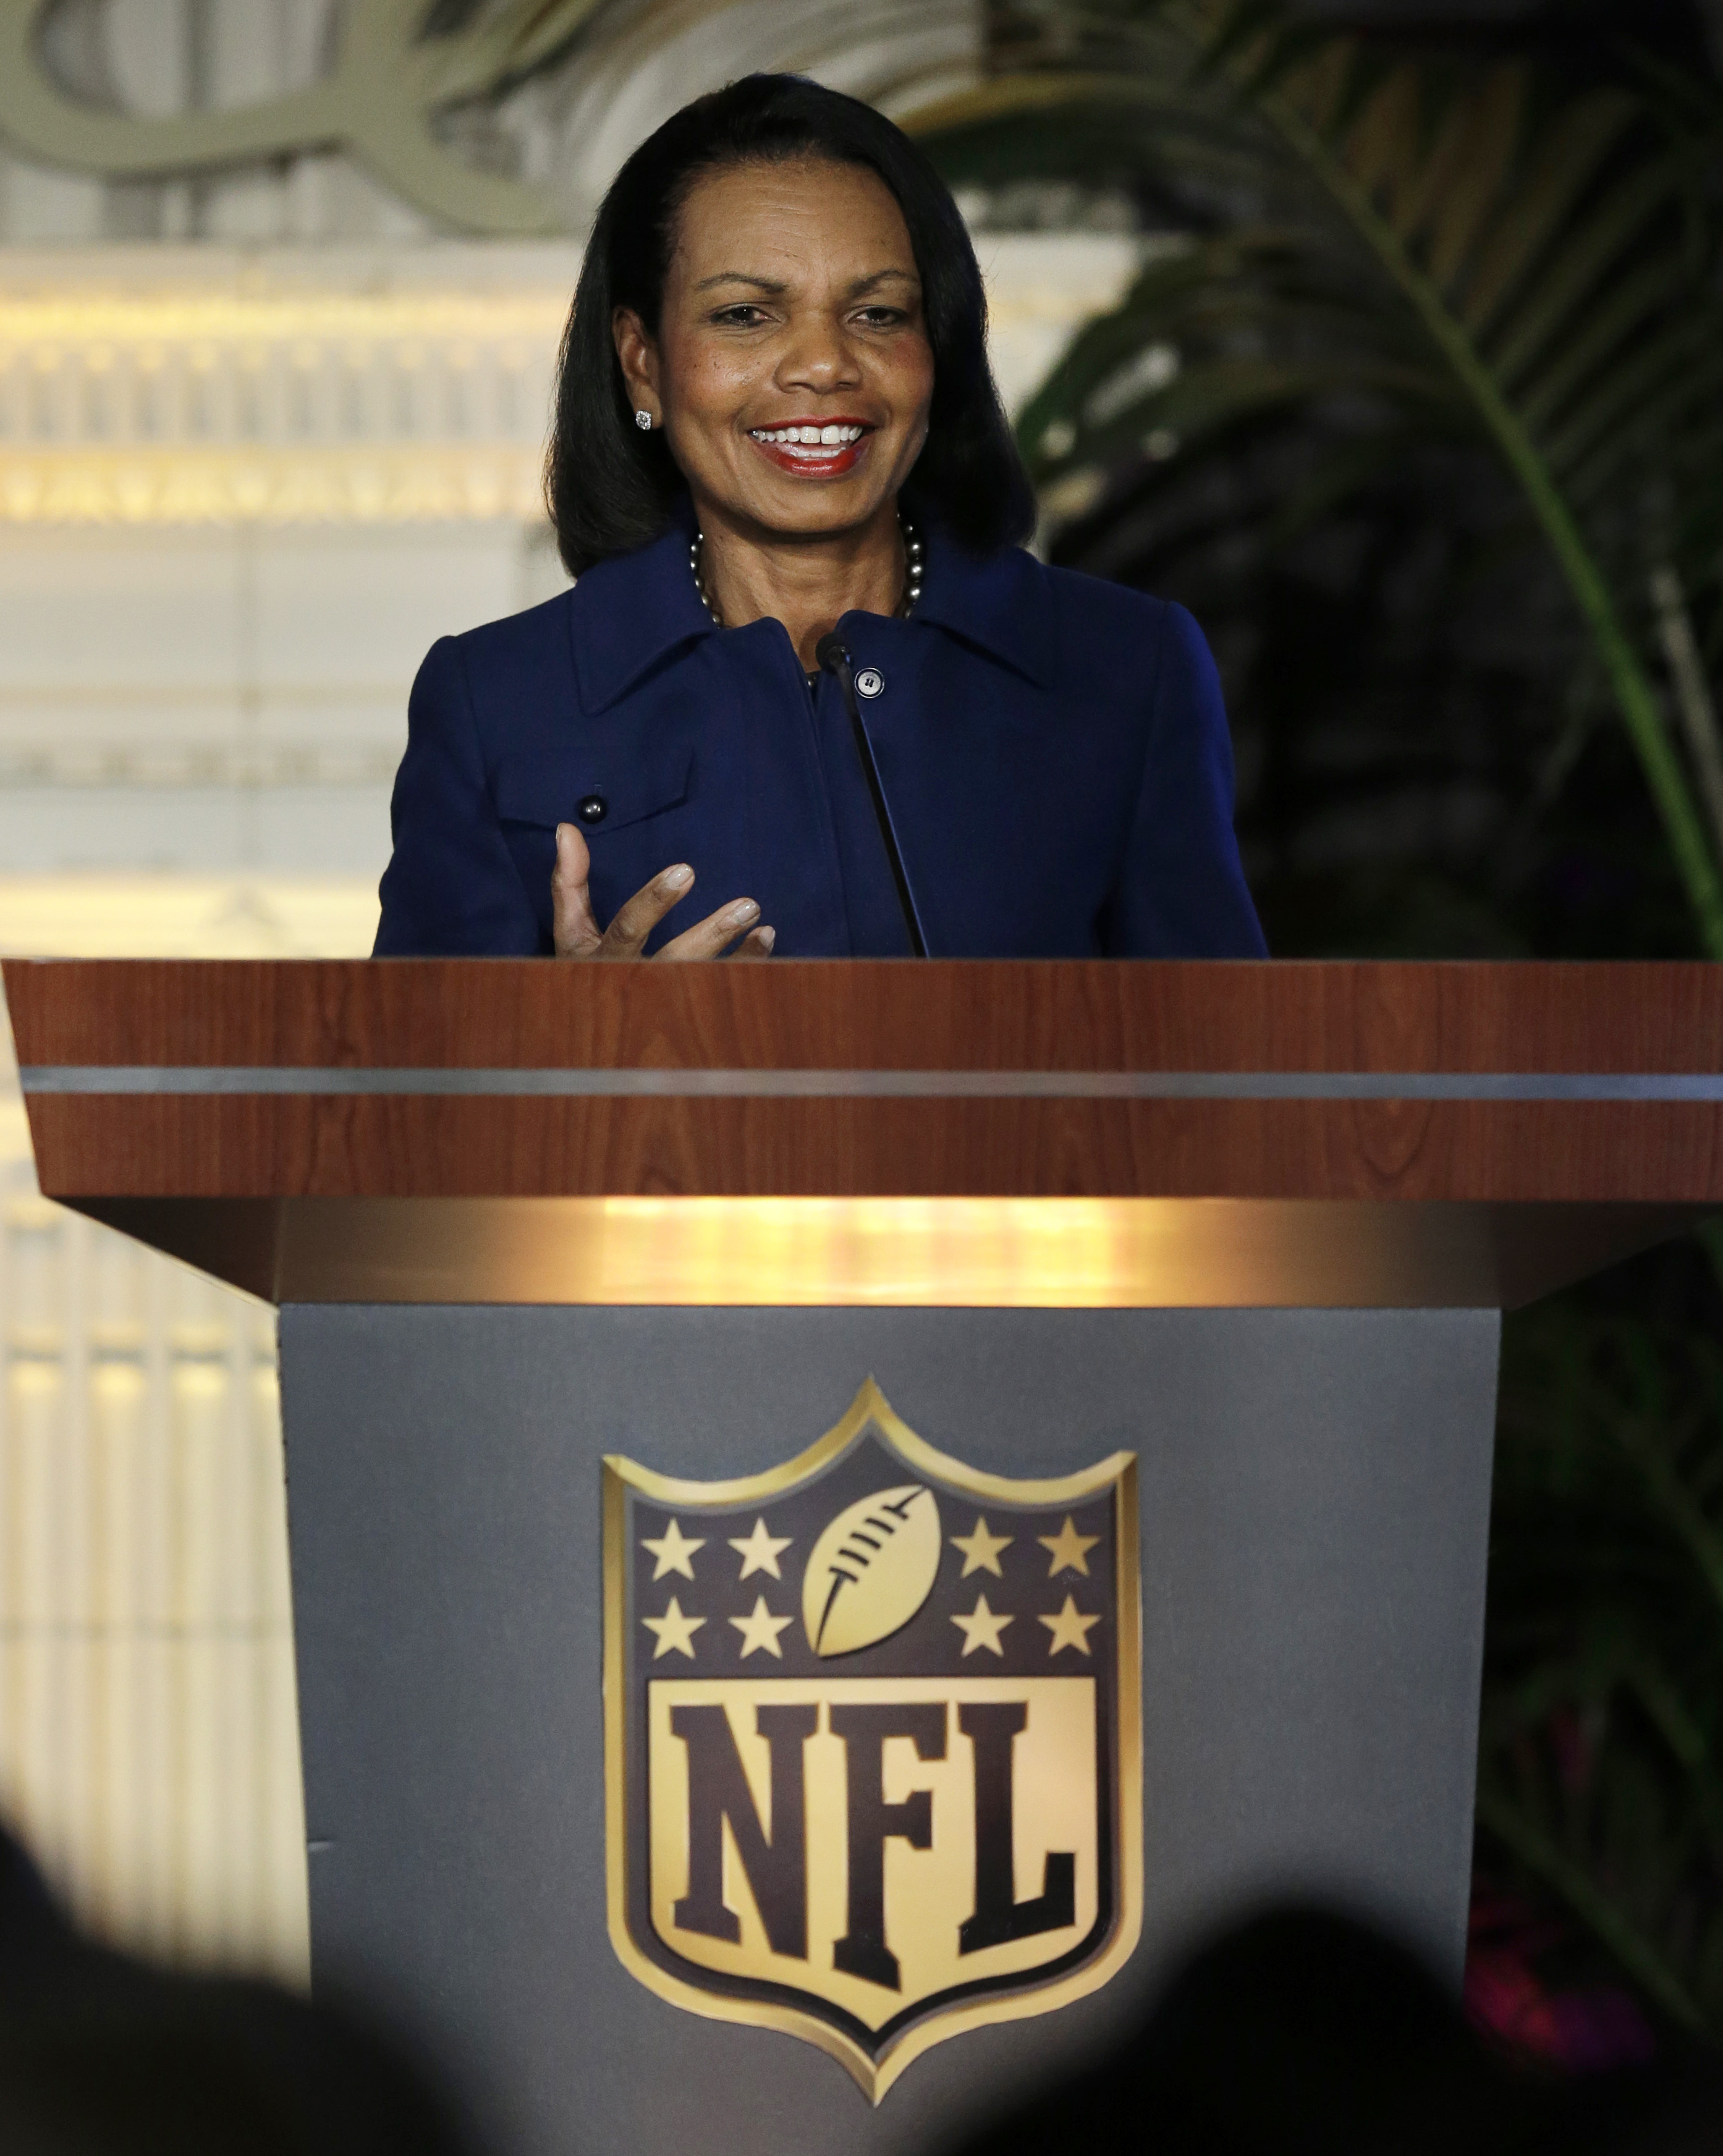 Condoleezza Rice gestures while speaking at the NFL Women's Summit on Feb. 4, 2016, in San Francisco.